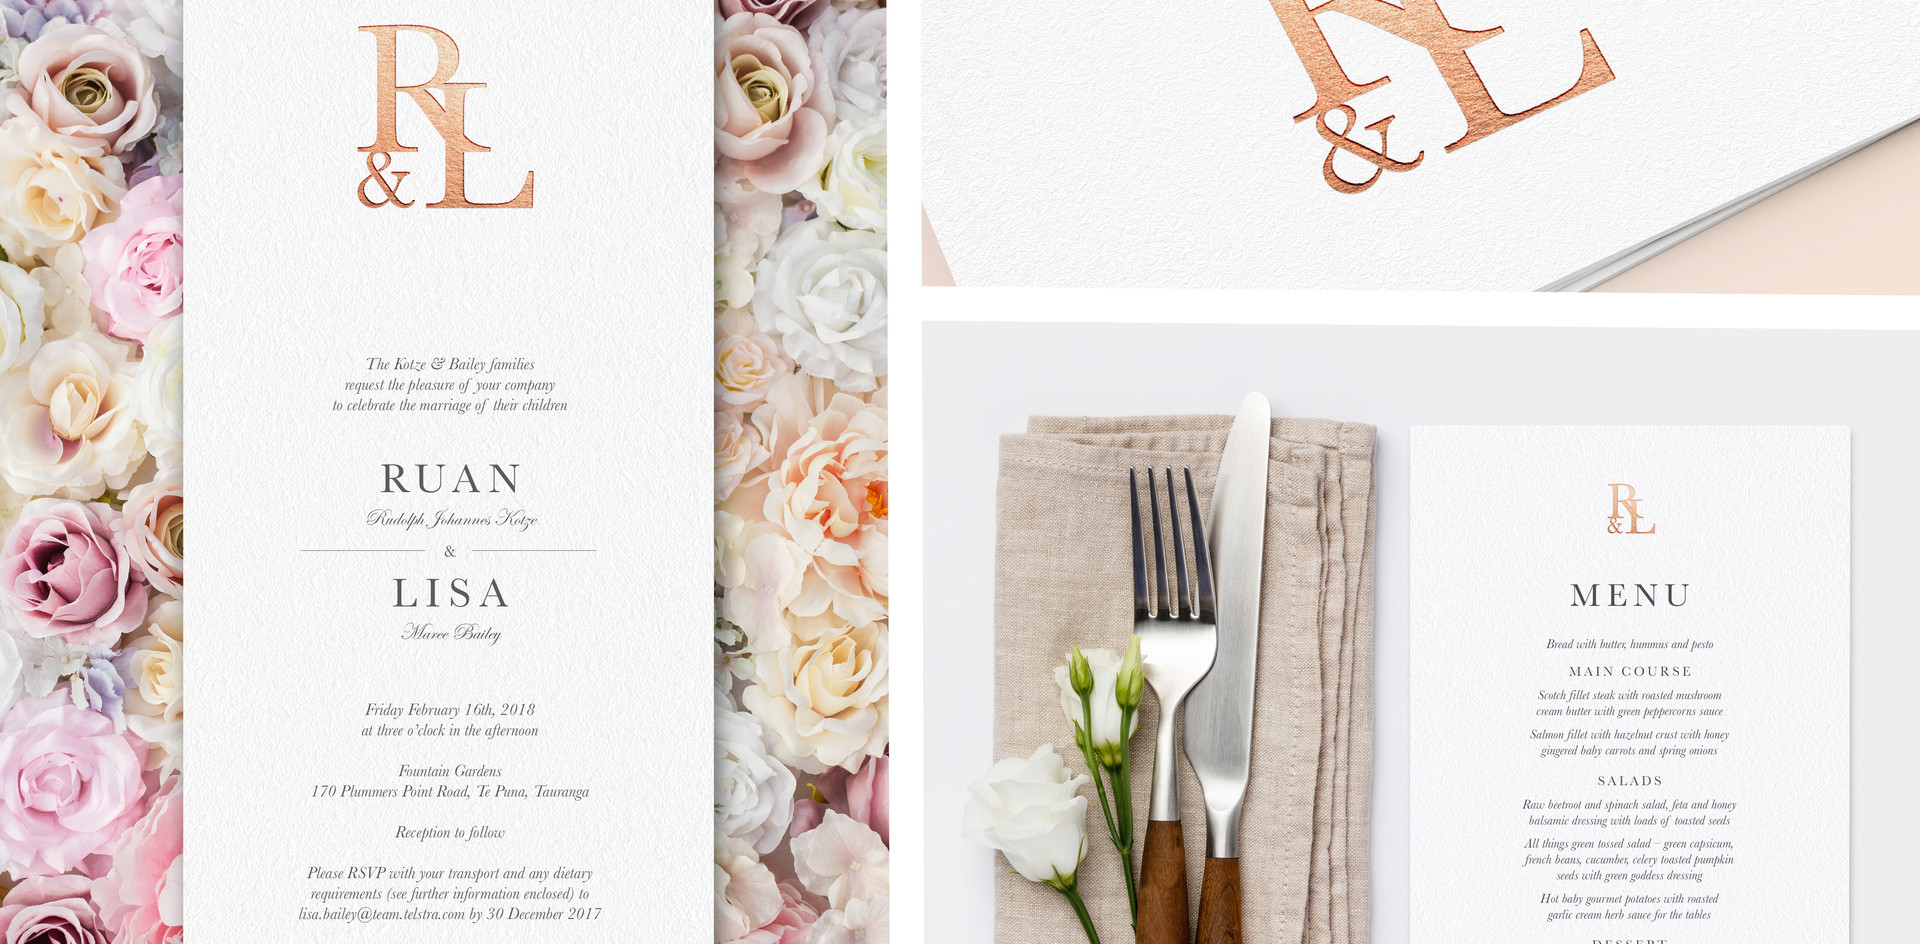 Personalised wedding stationery, including, invitation, menu, save the dates, seating chart, and additional signage